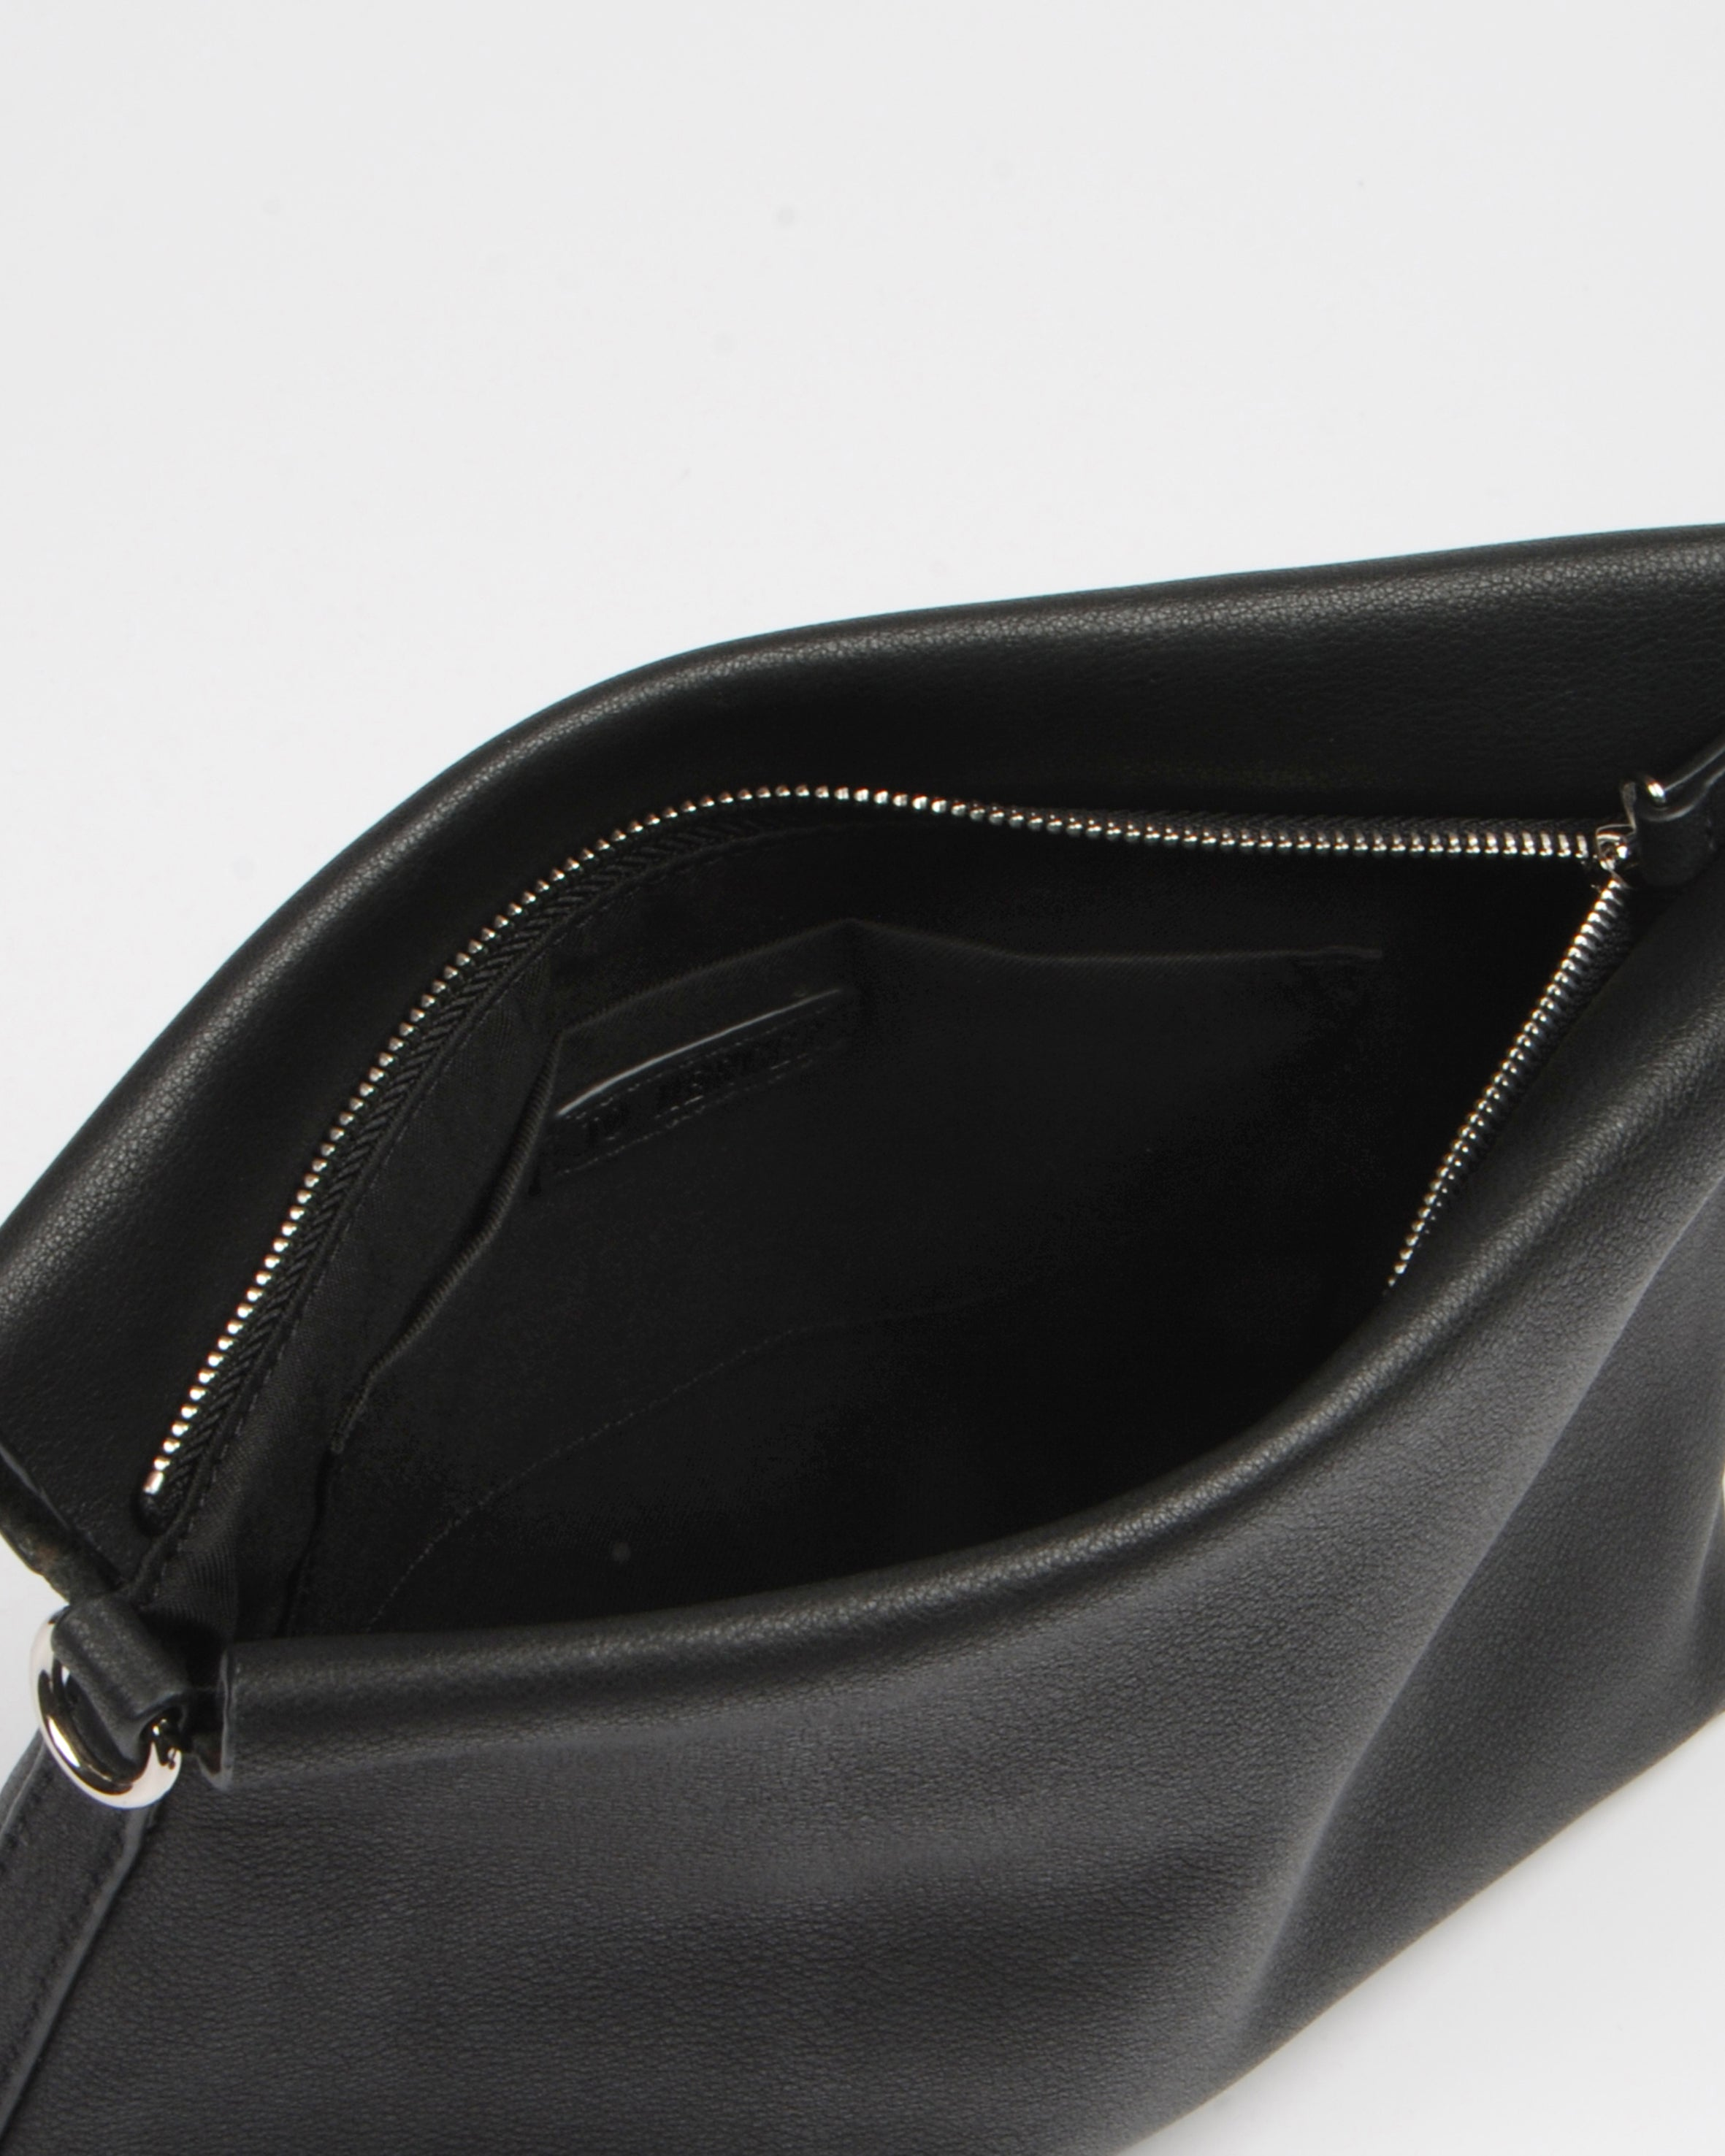 SAGE CROSS BODY BAG BLACK LEATHER